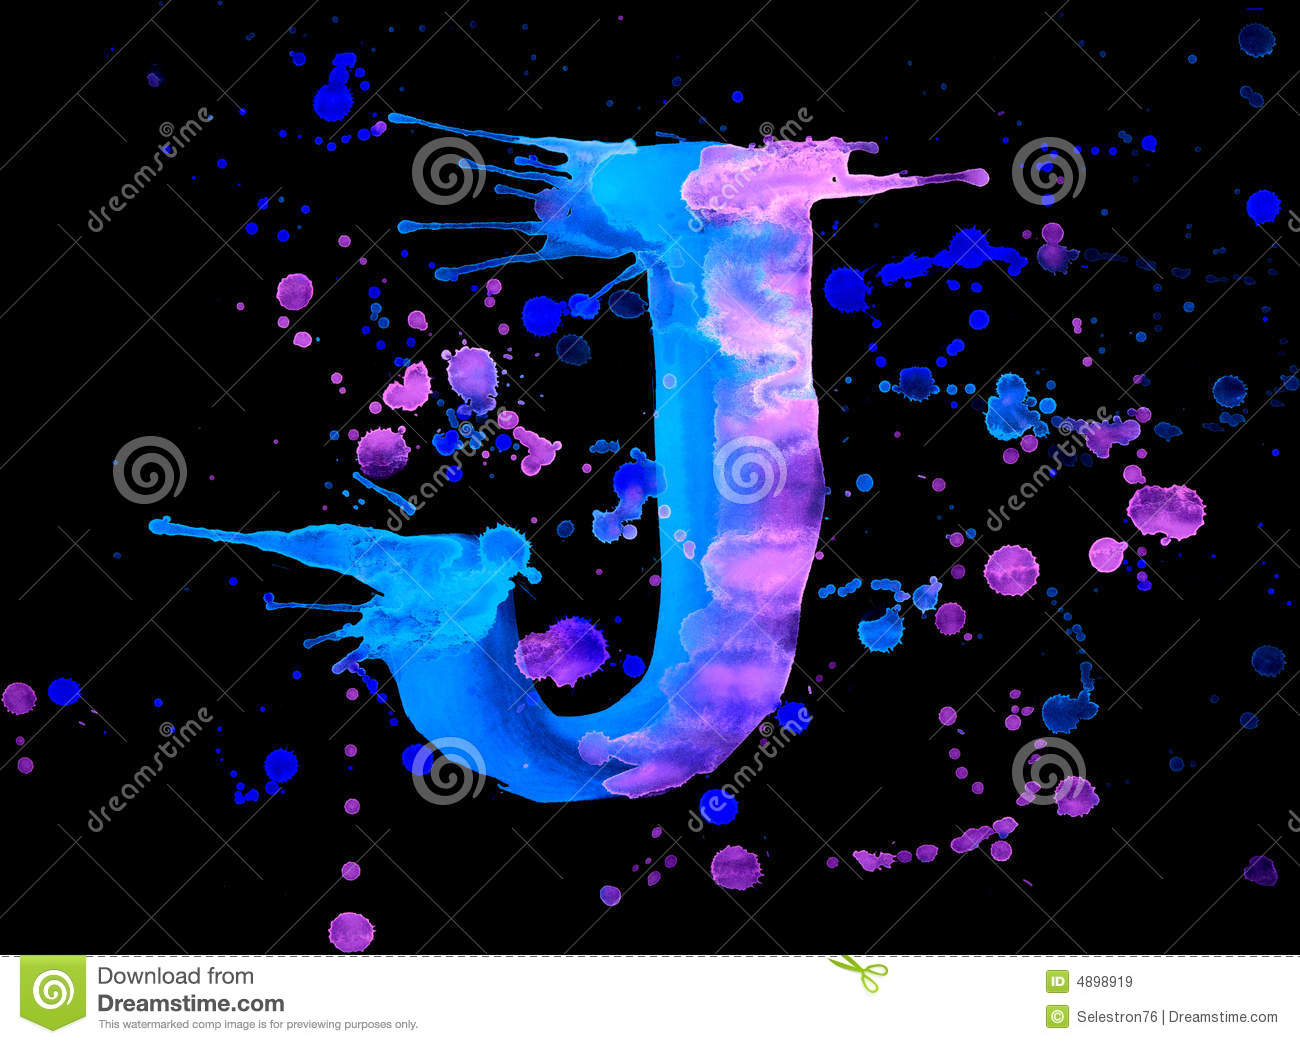 Neon Watercolor ...J Letter Design Wallpaper